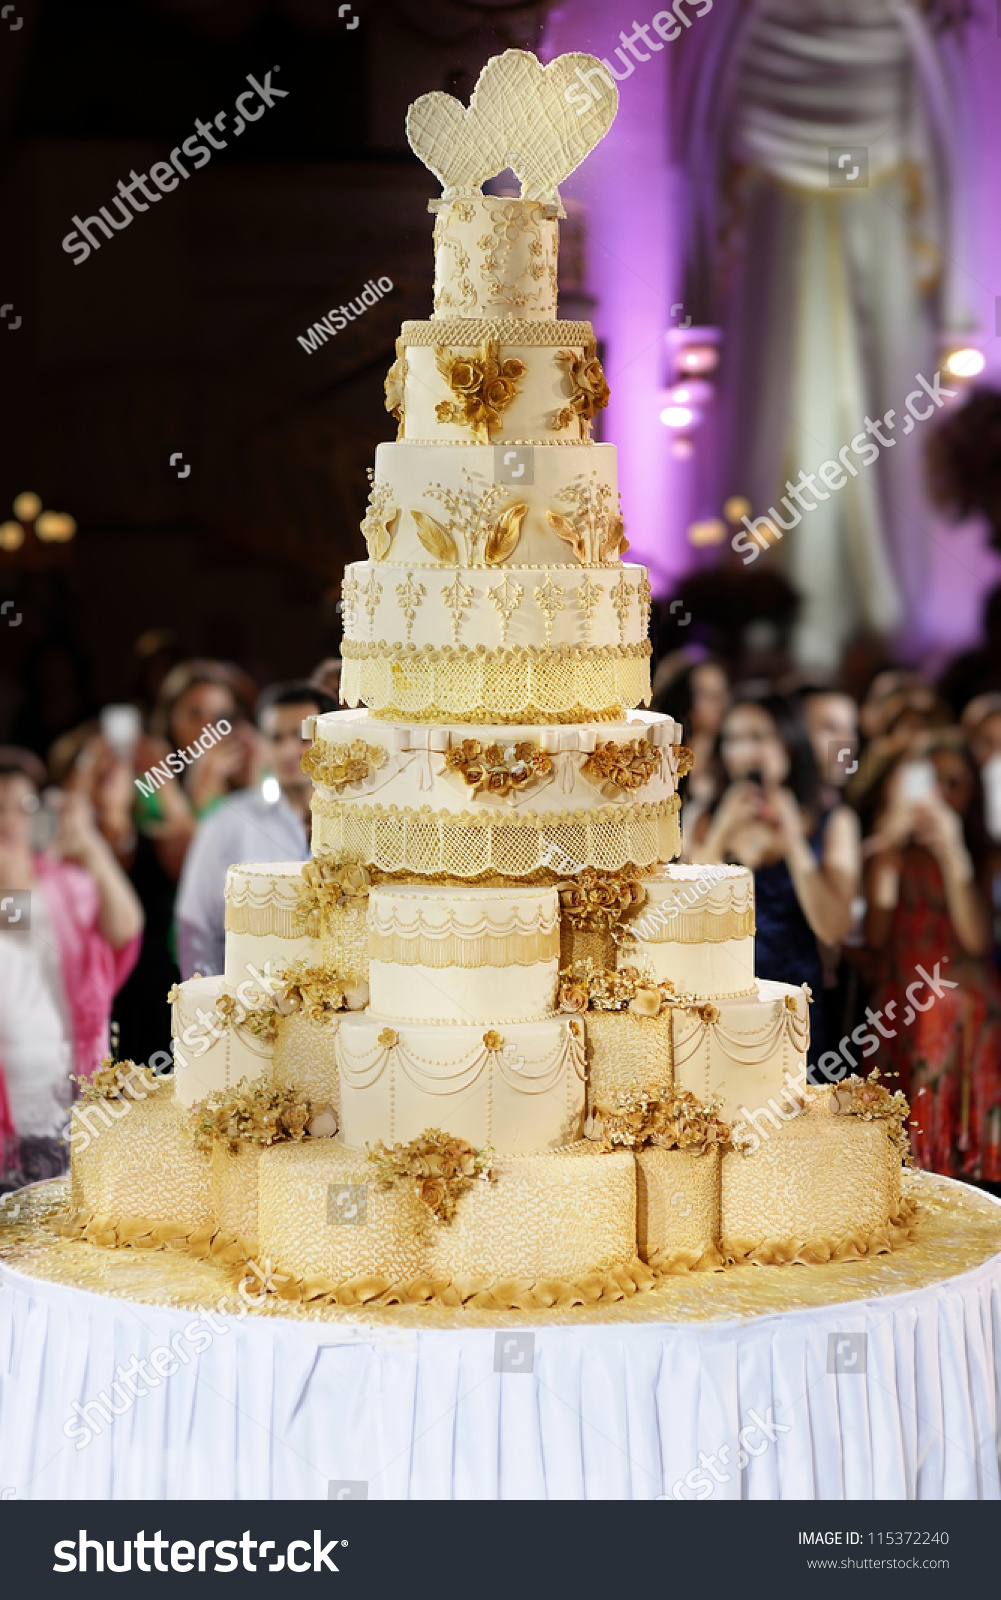 worlds largest wedding cake wedding cake stock photo 115372240 27634